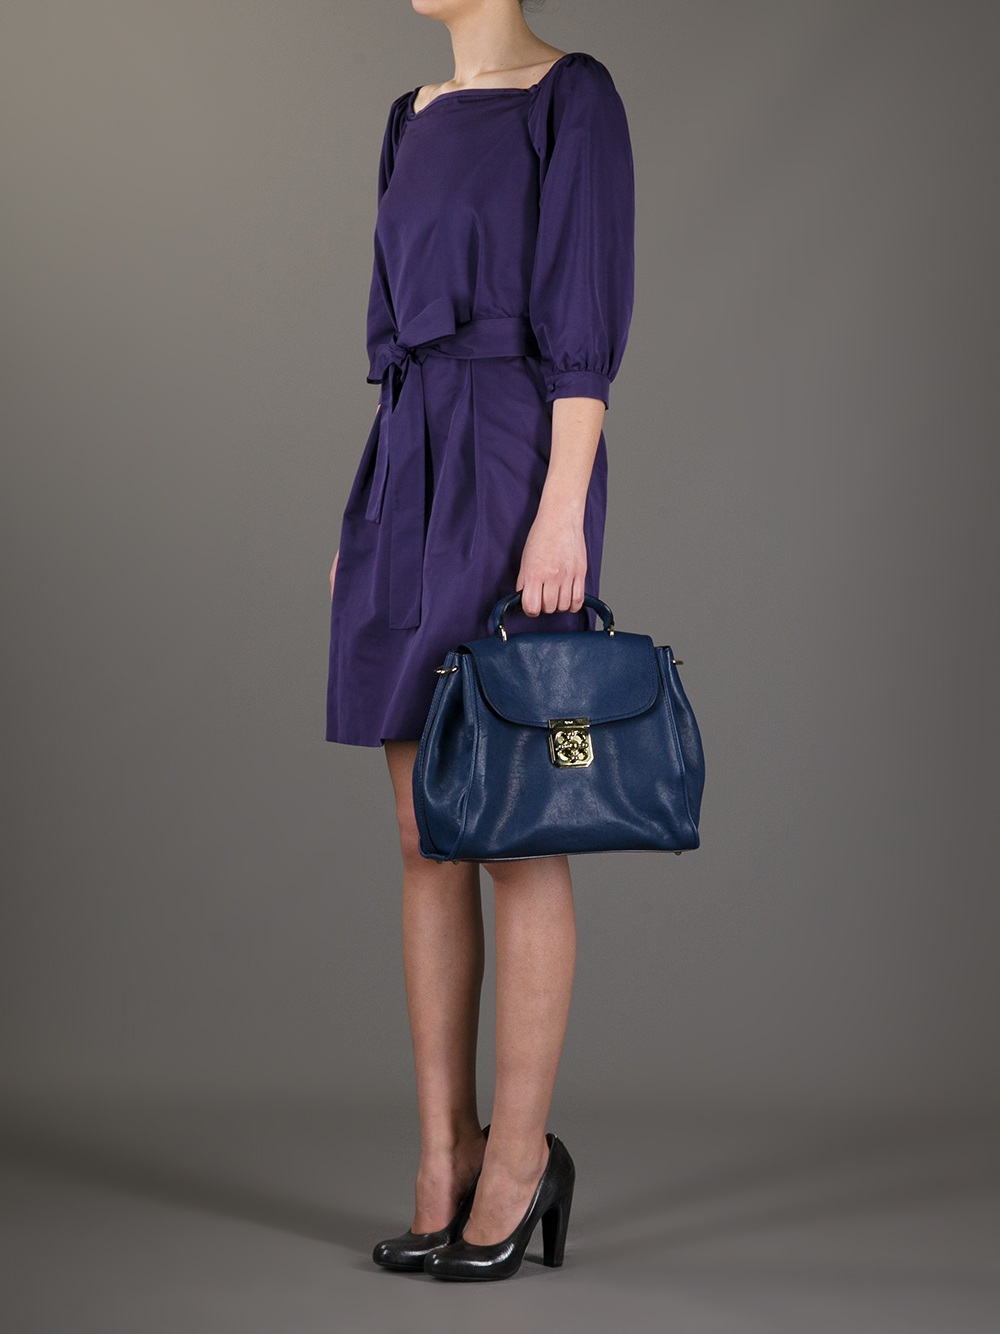 a2e4f431abb Chlo¨¦ Elsie Satchel Bag in Blue